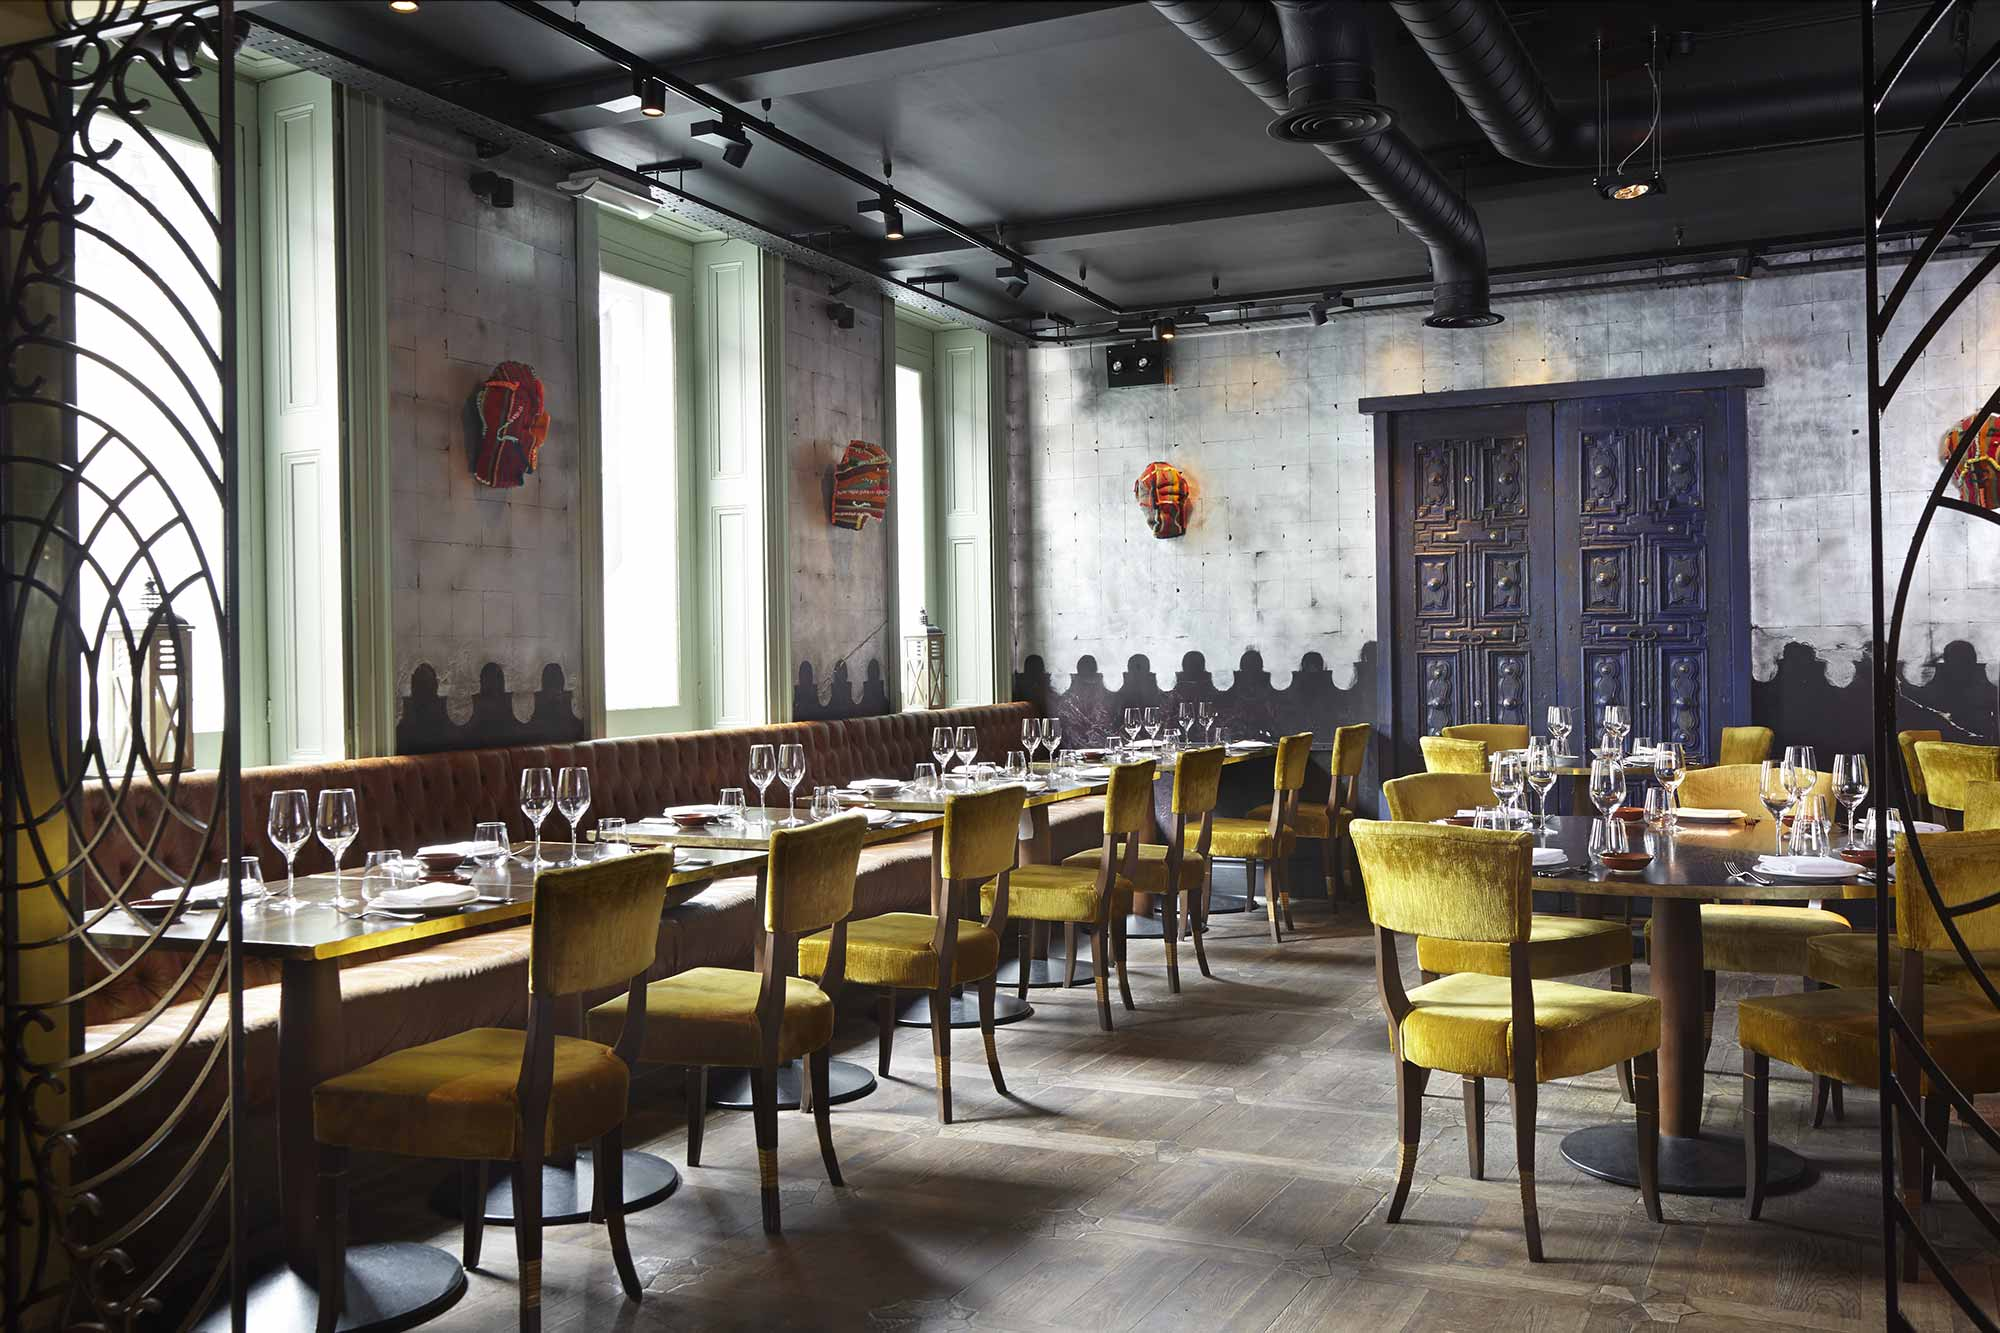 Coya restaurant peruvian restaurant in london Small dining rooms london